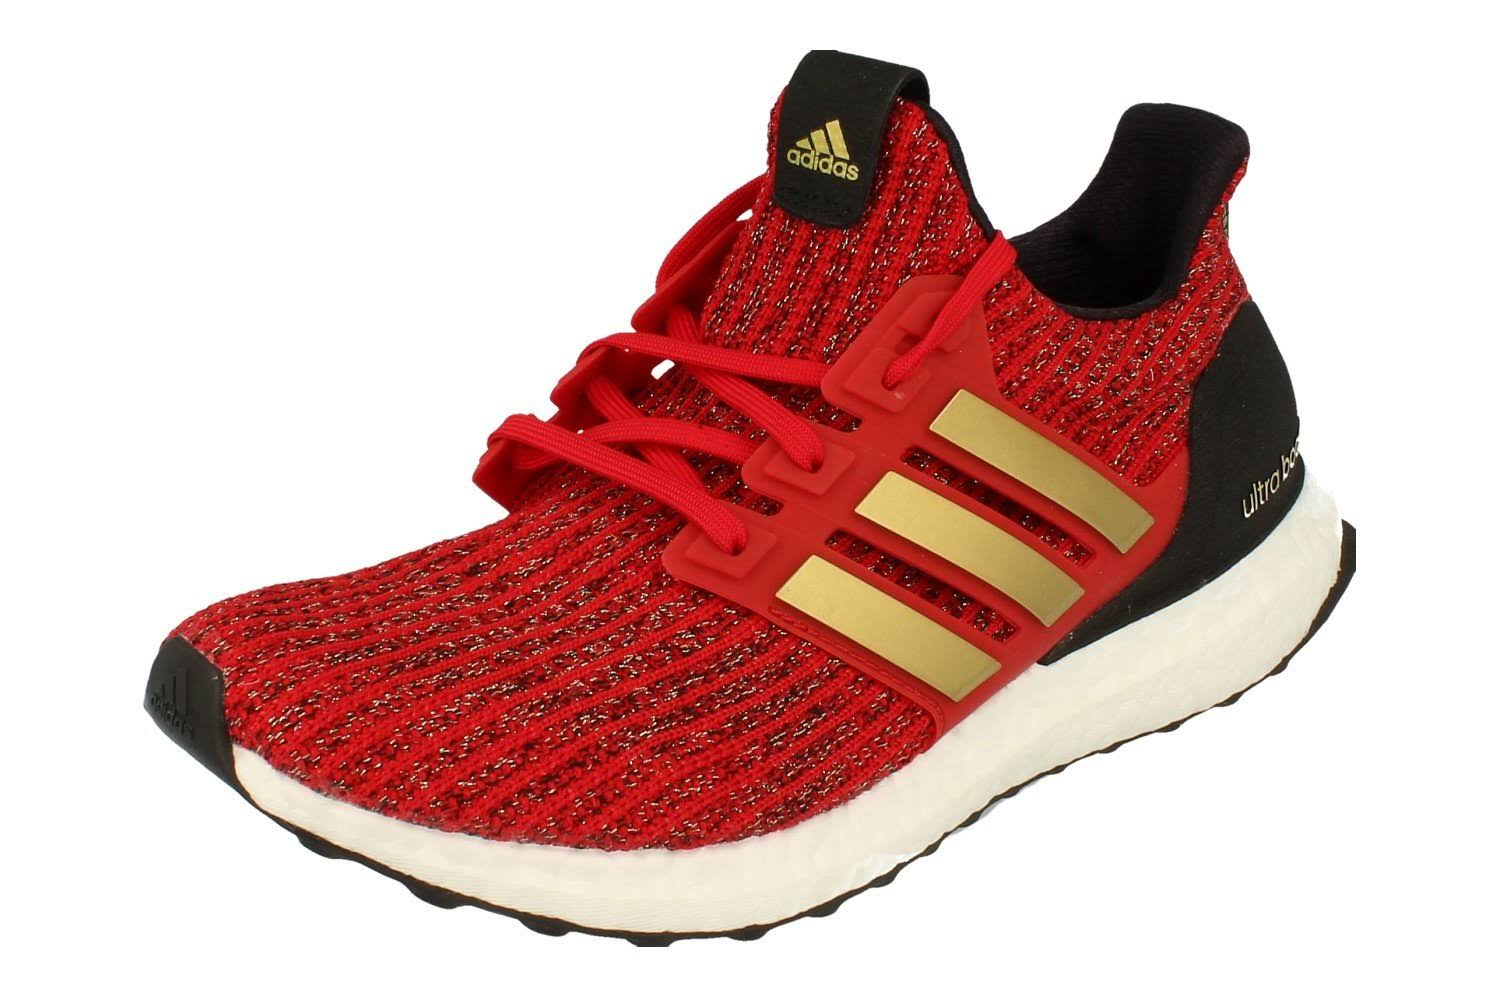 Buy Adidas ultraboost x GOT Womens Sneakers (uk 6 us 7.5 eu 39 1/3, red gold white EE3710) EE3710 - Free UK Delivery - Super Fast EURO & USA Delivery!